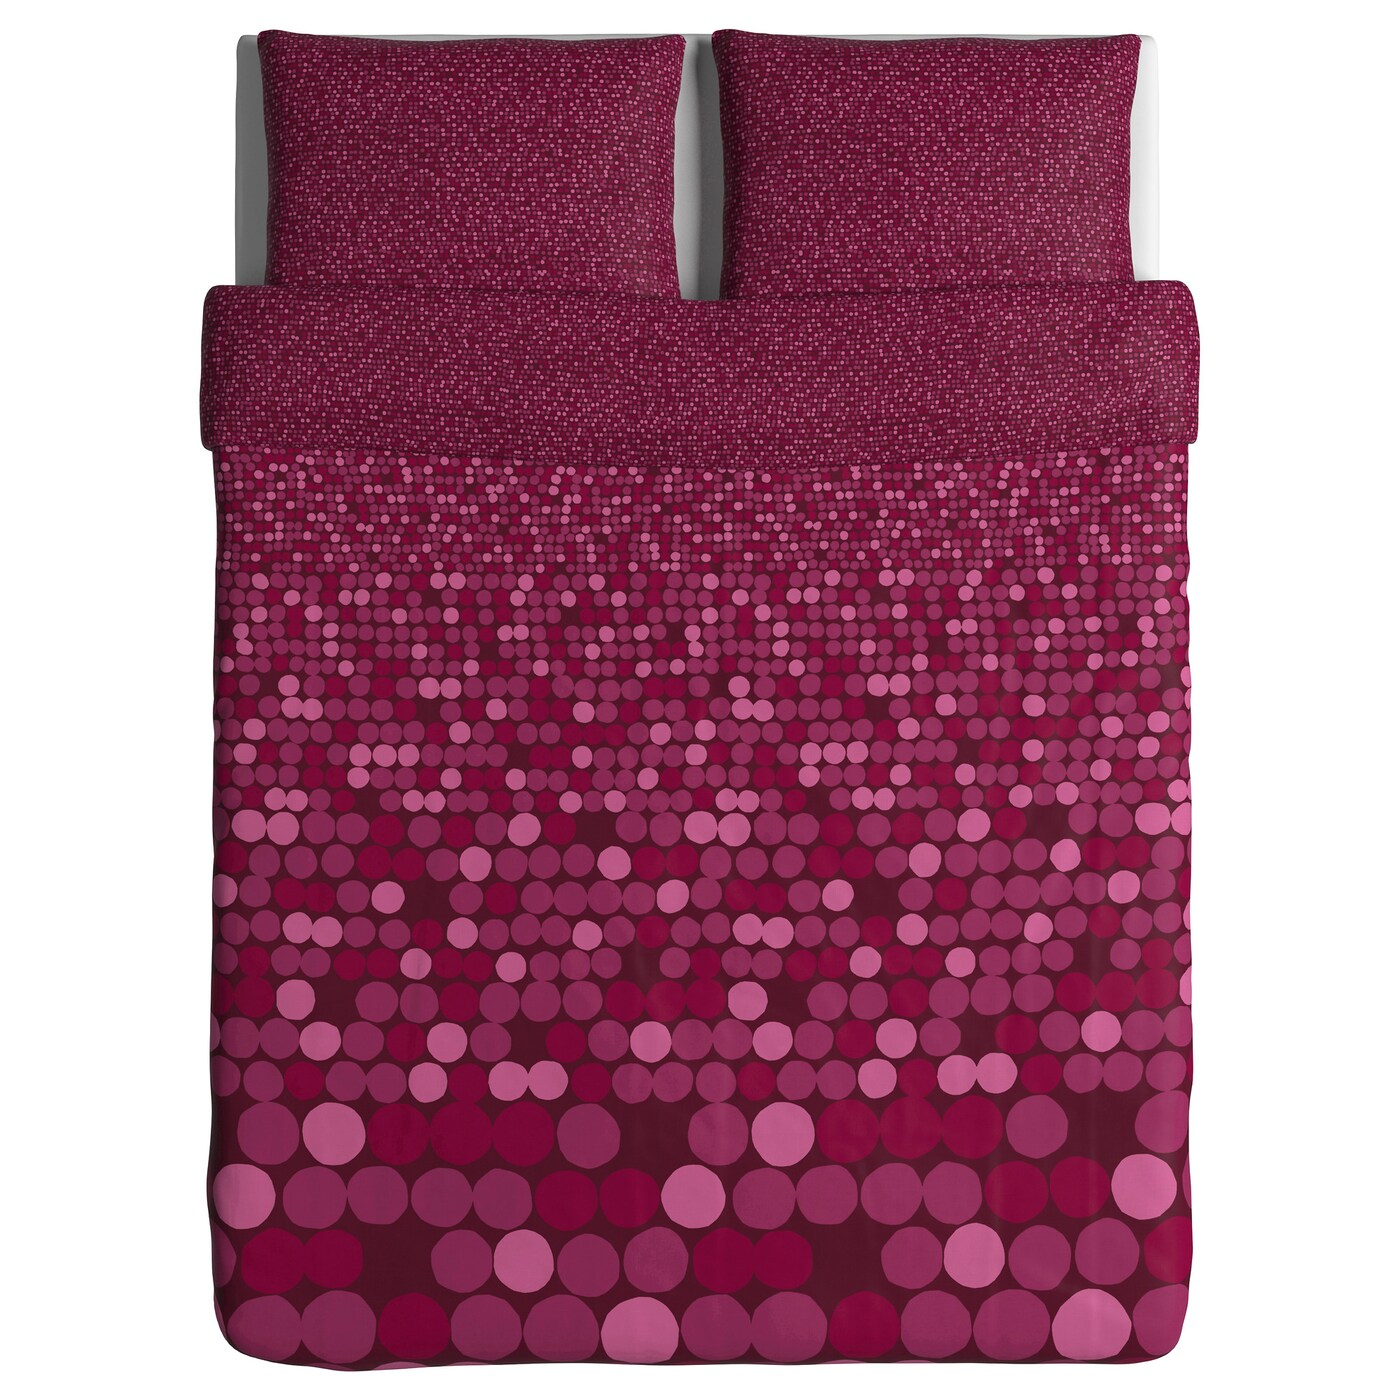 sm rboll quilt cover and 2 pillowcases dark pink 200x200. Black Bedroom Furniture Sets. Home Design Ideas